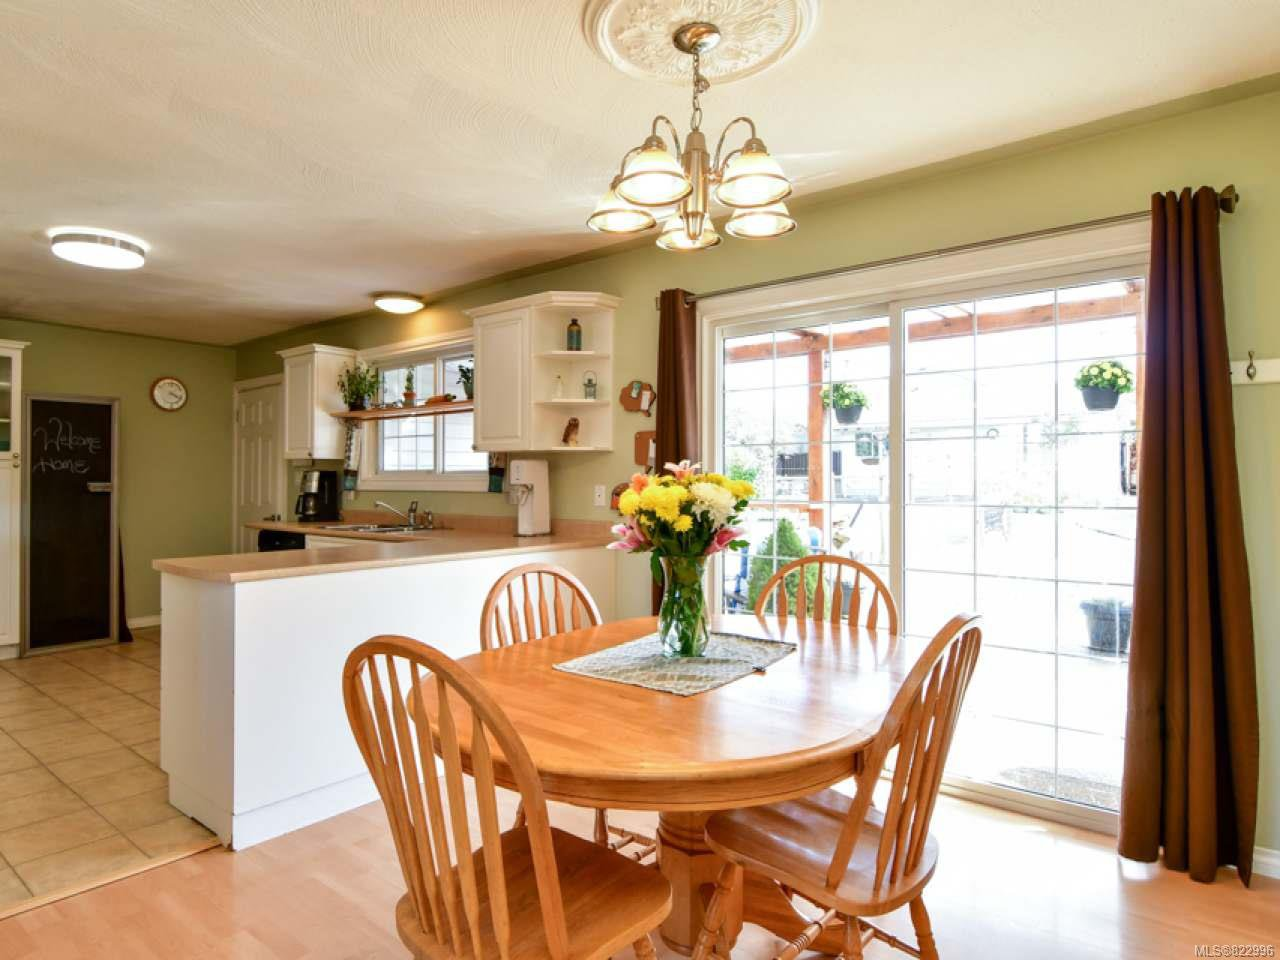 Photo 18: Photos: 691 Holm Rd in CAMPBELL RIVER: CR Willow Point House for sale (Campbell River)  : MLS®# 822996